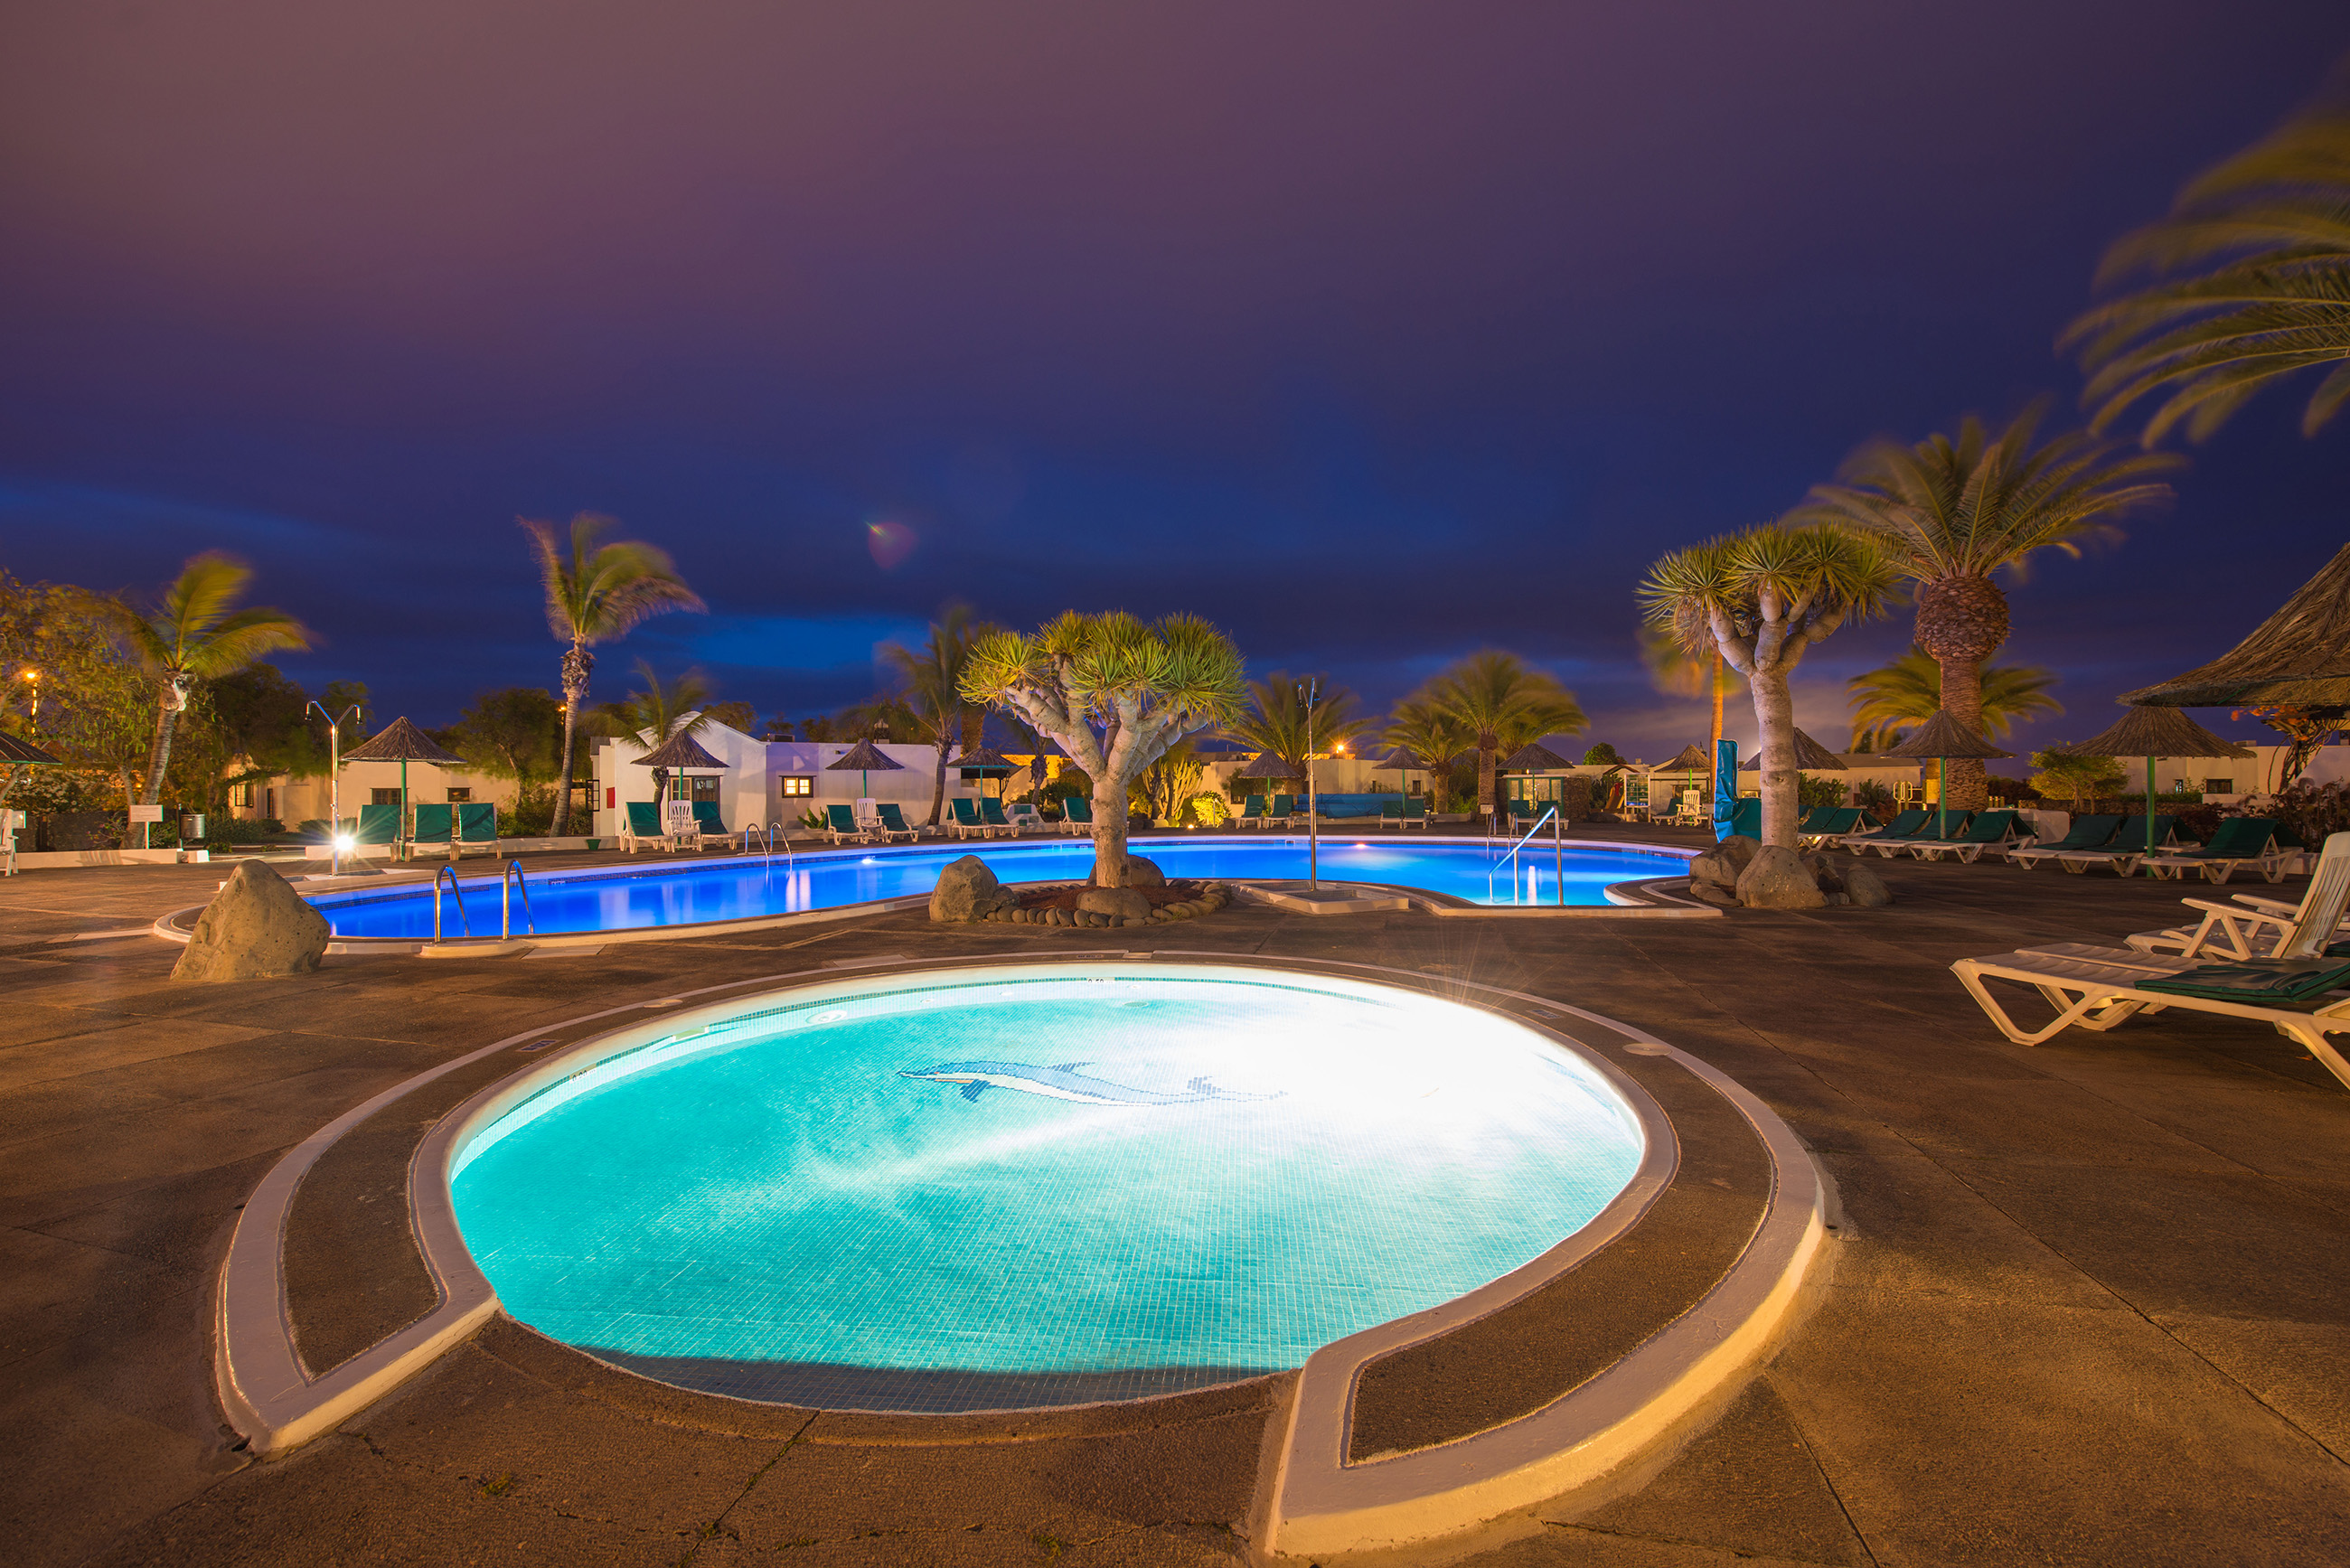 Las Casitas Swimming Pool at night 2